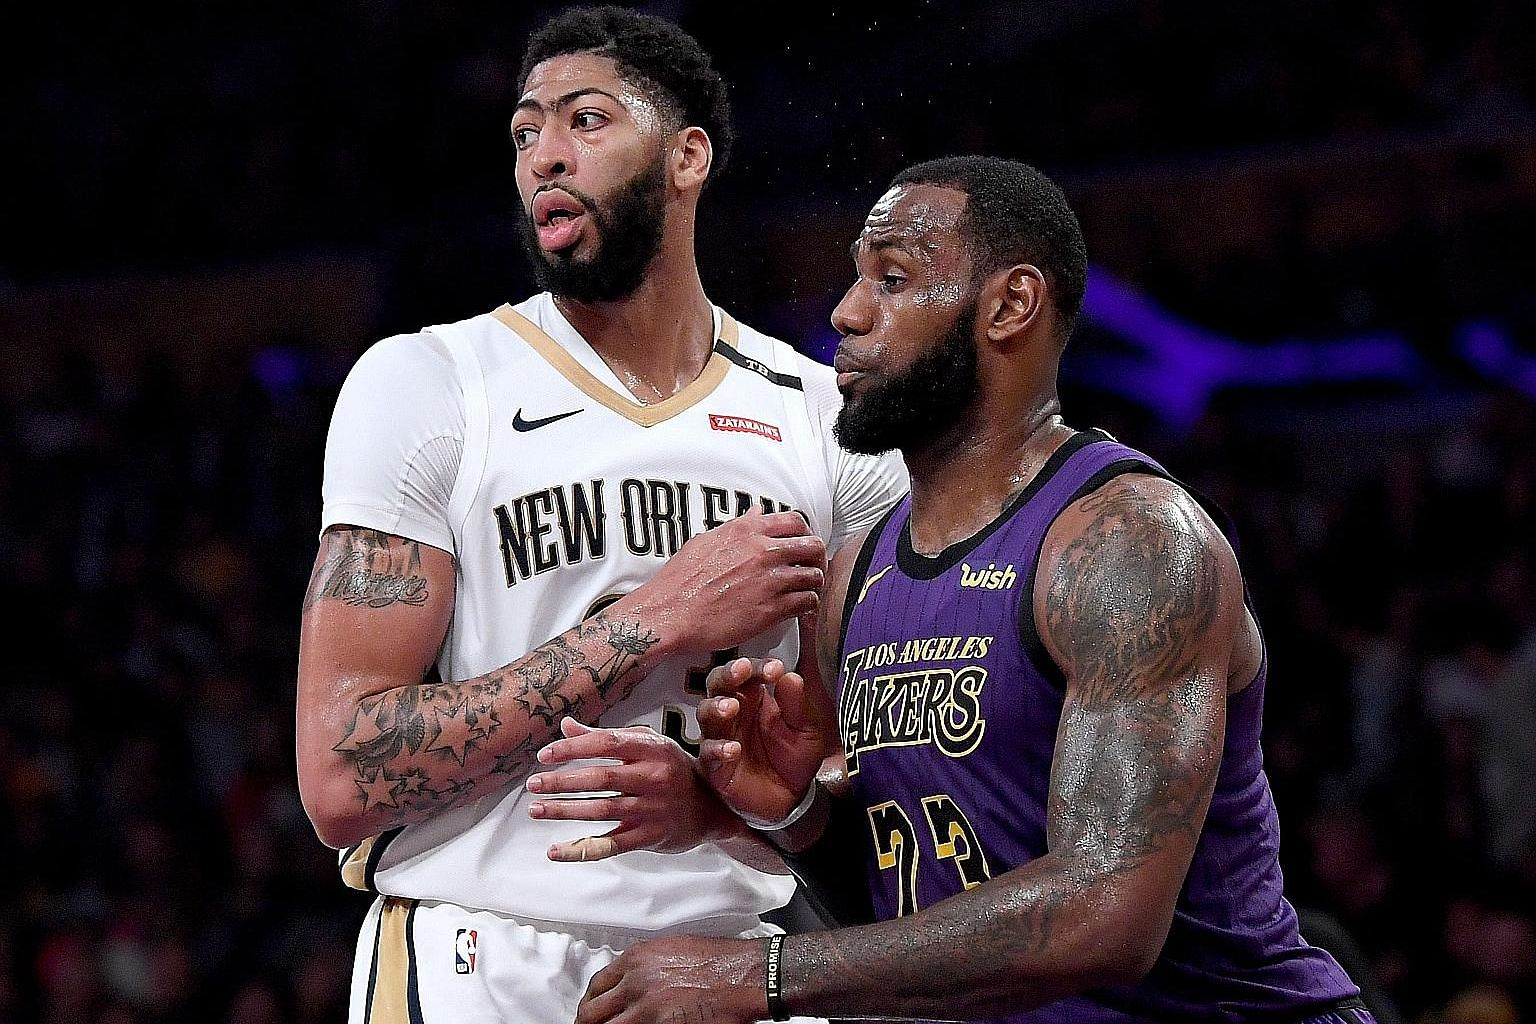 Los Angeles Lakers star LeBron James guarding Anthony Davis during their 112-104 win over the New Orleans Pelicans at the Staples Centre last December. They will play together next season as the Lakers aim to make the play-offs for the first time sin